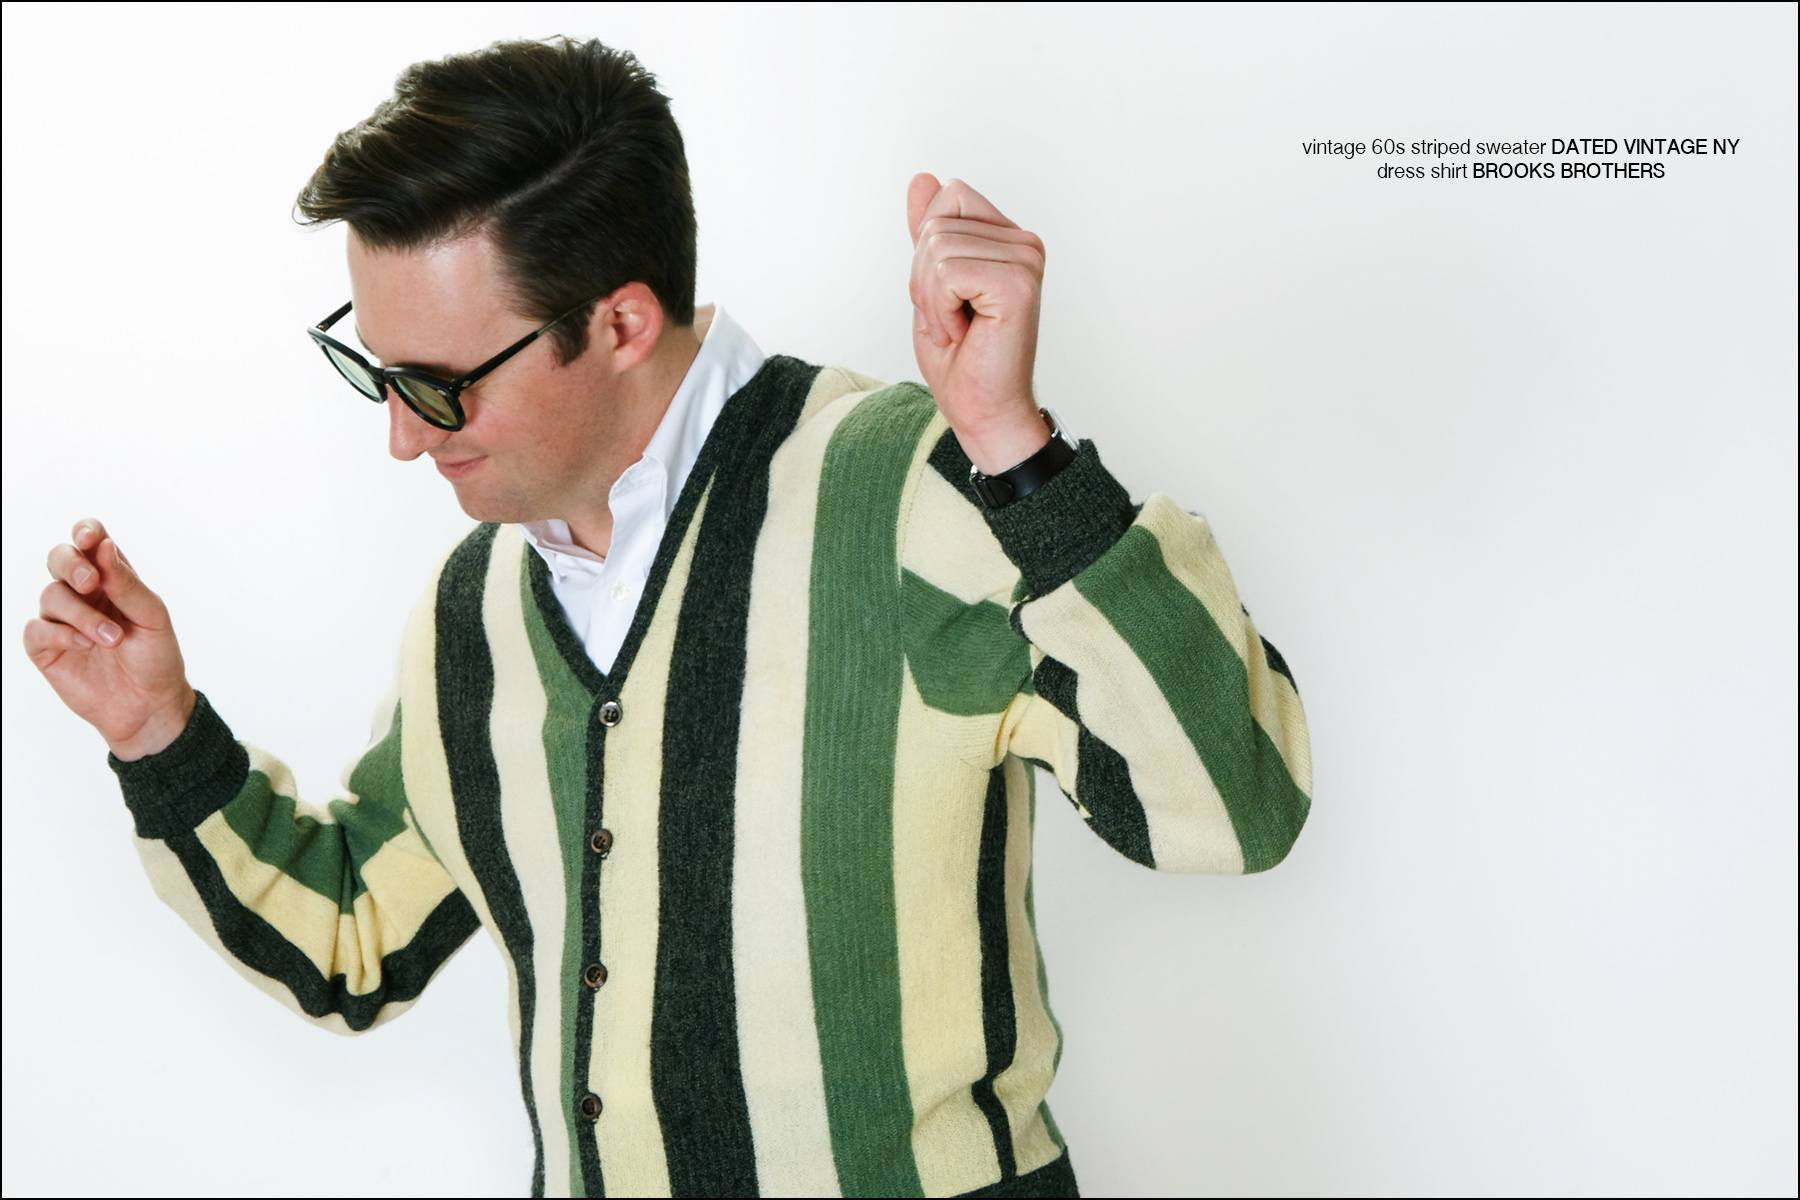 Stylish musician Nick Waterhouse photographed by Alexander Thompson, with styling by Antonio Abrego for Dated Vintage. Ponyboy magazine New York.